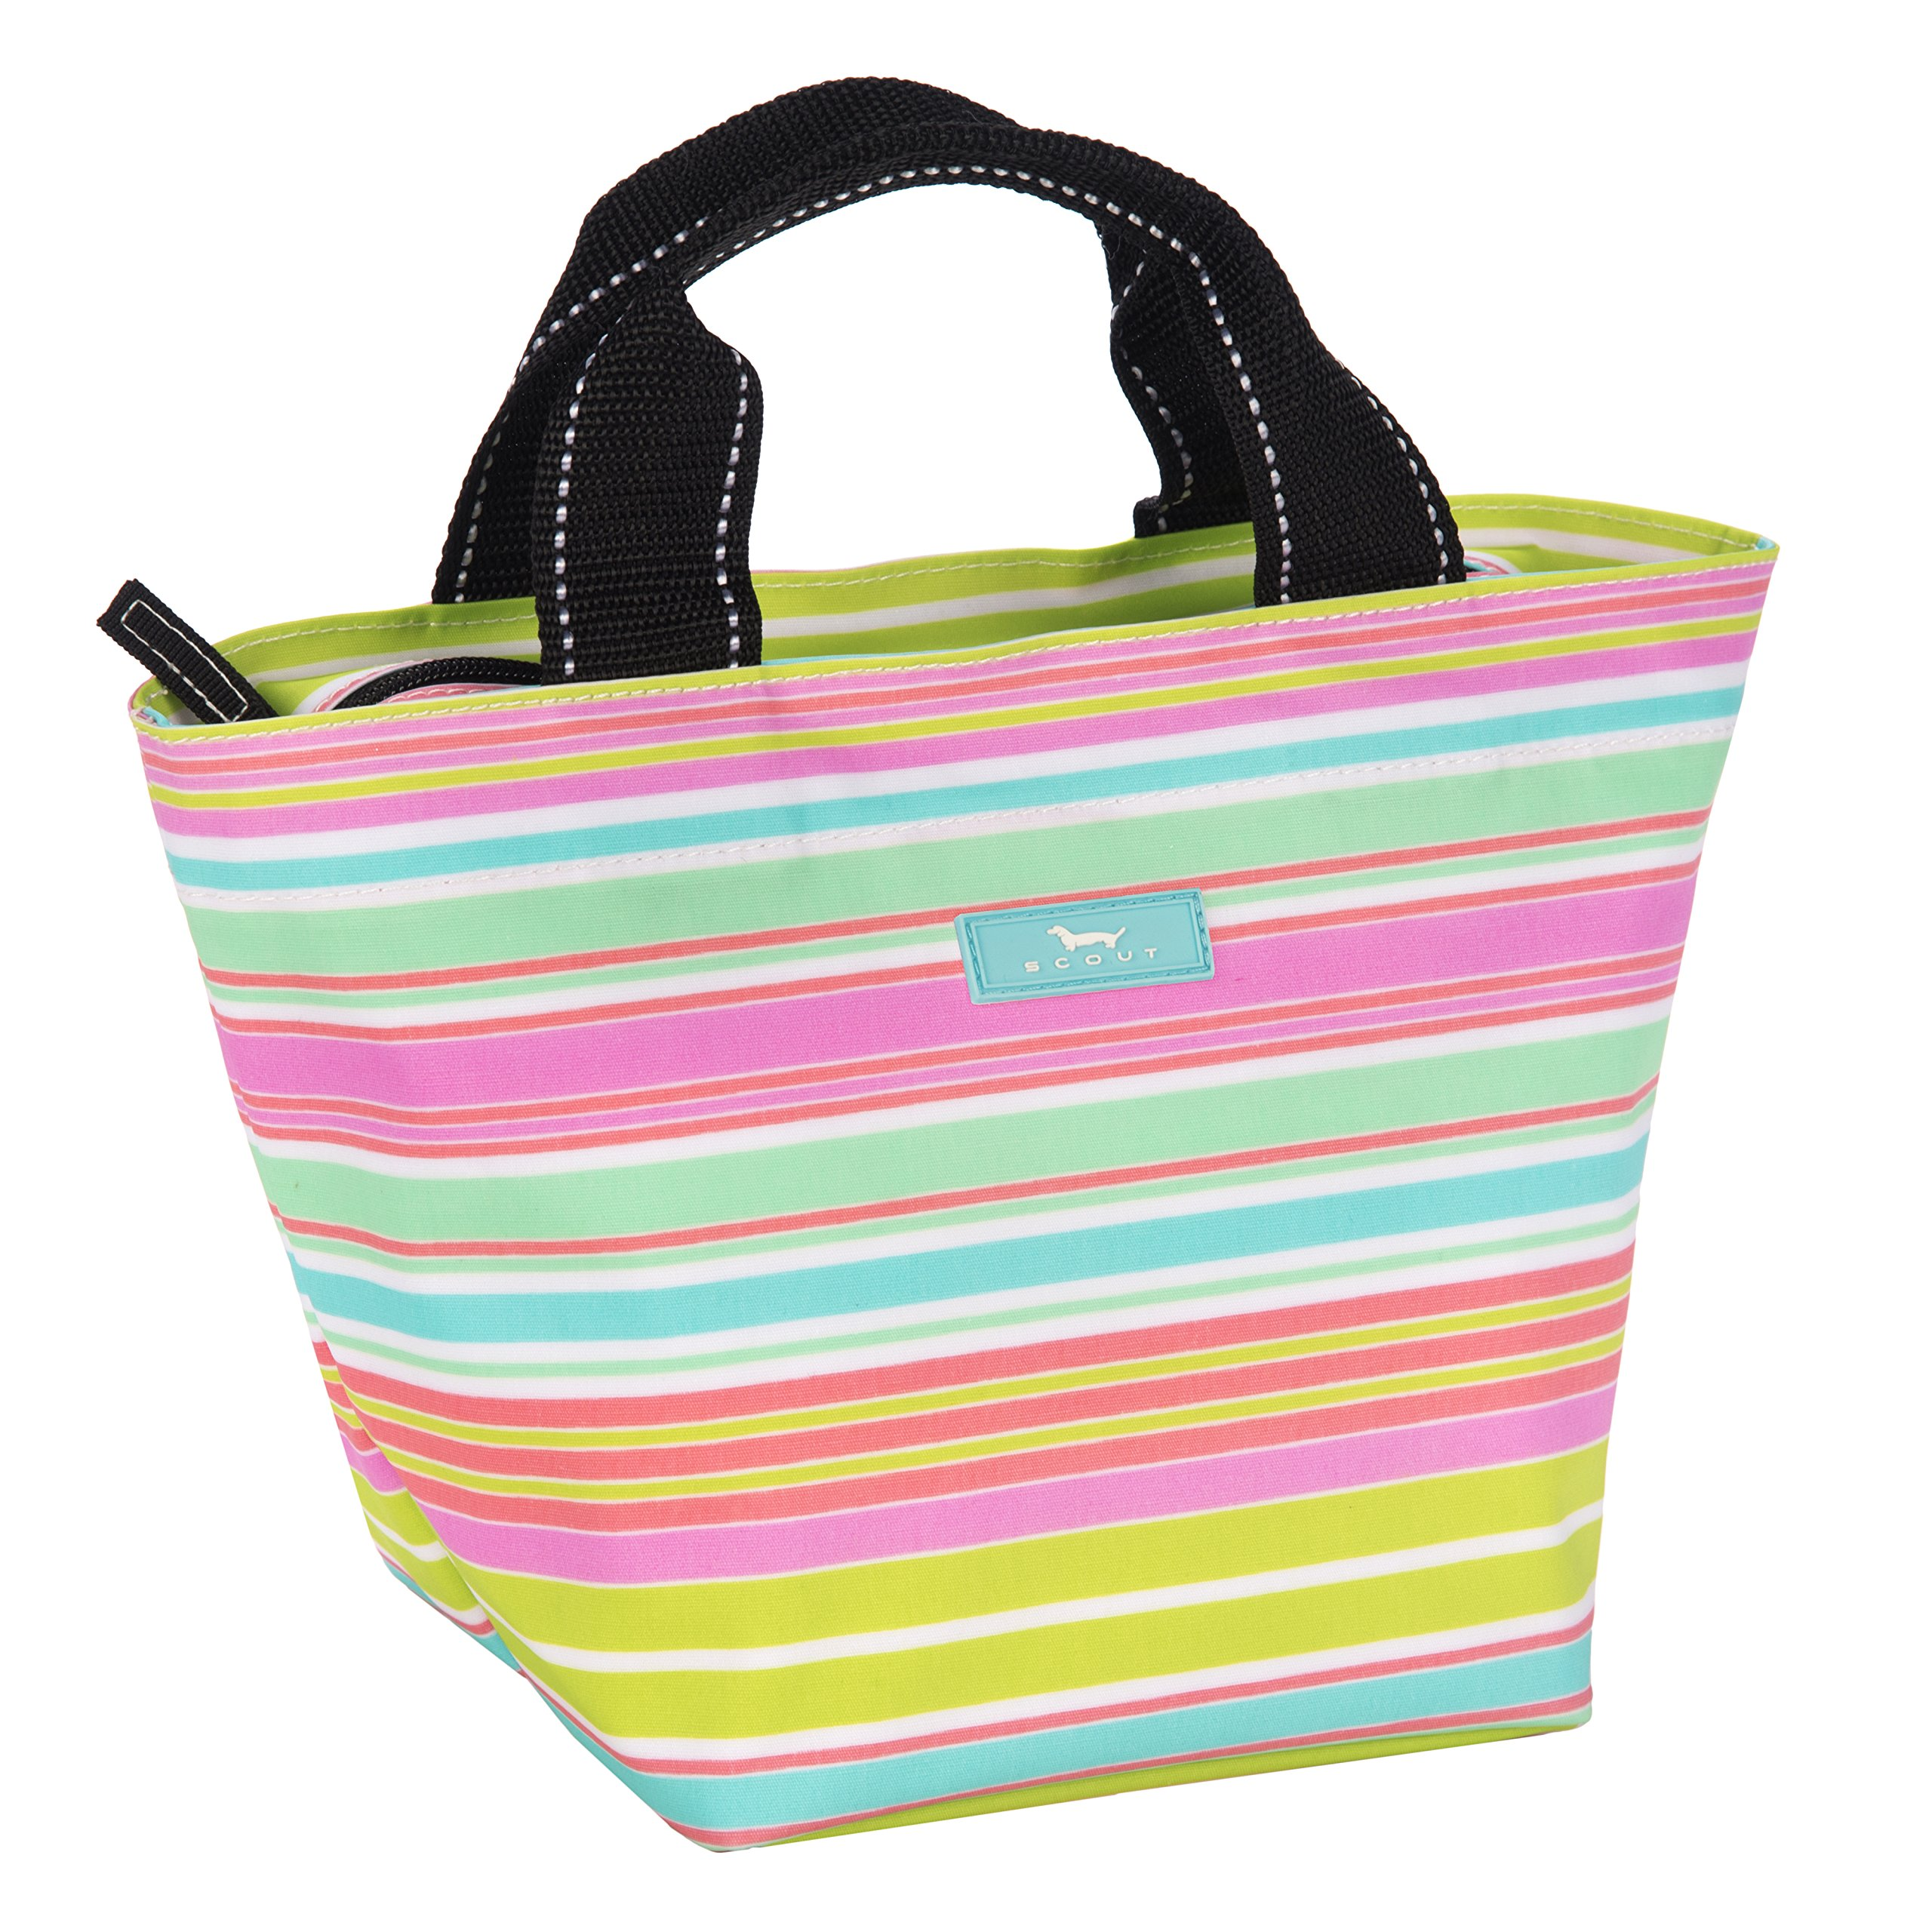 SCOUT Little Tripper Small & Lightweight Everyday Accessory Tote Bag, Interior Pocket, Water Resistant, Zips Closed, Sol Surfer